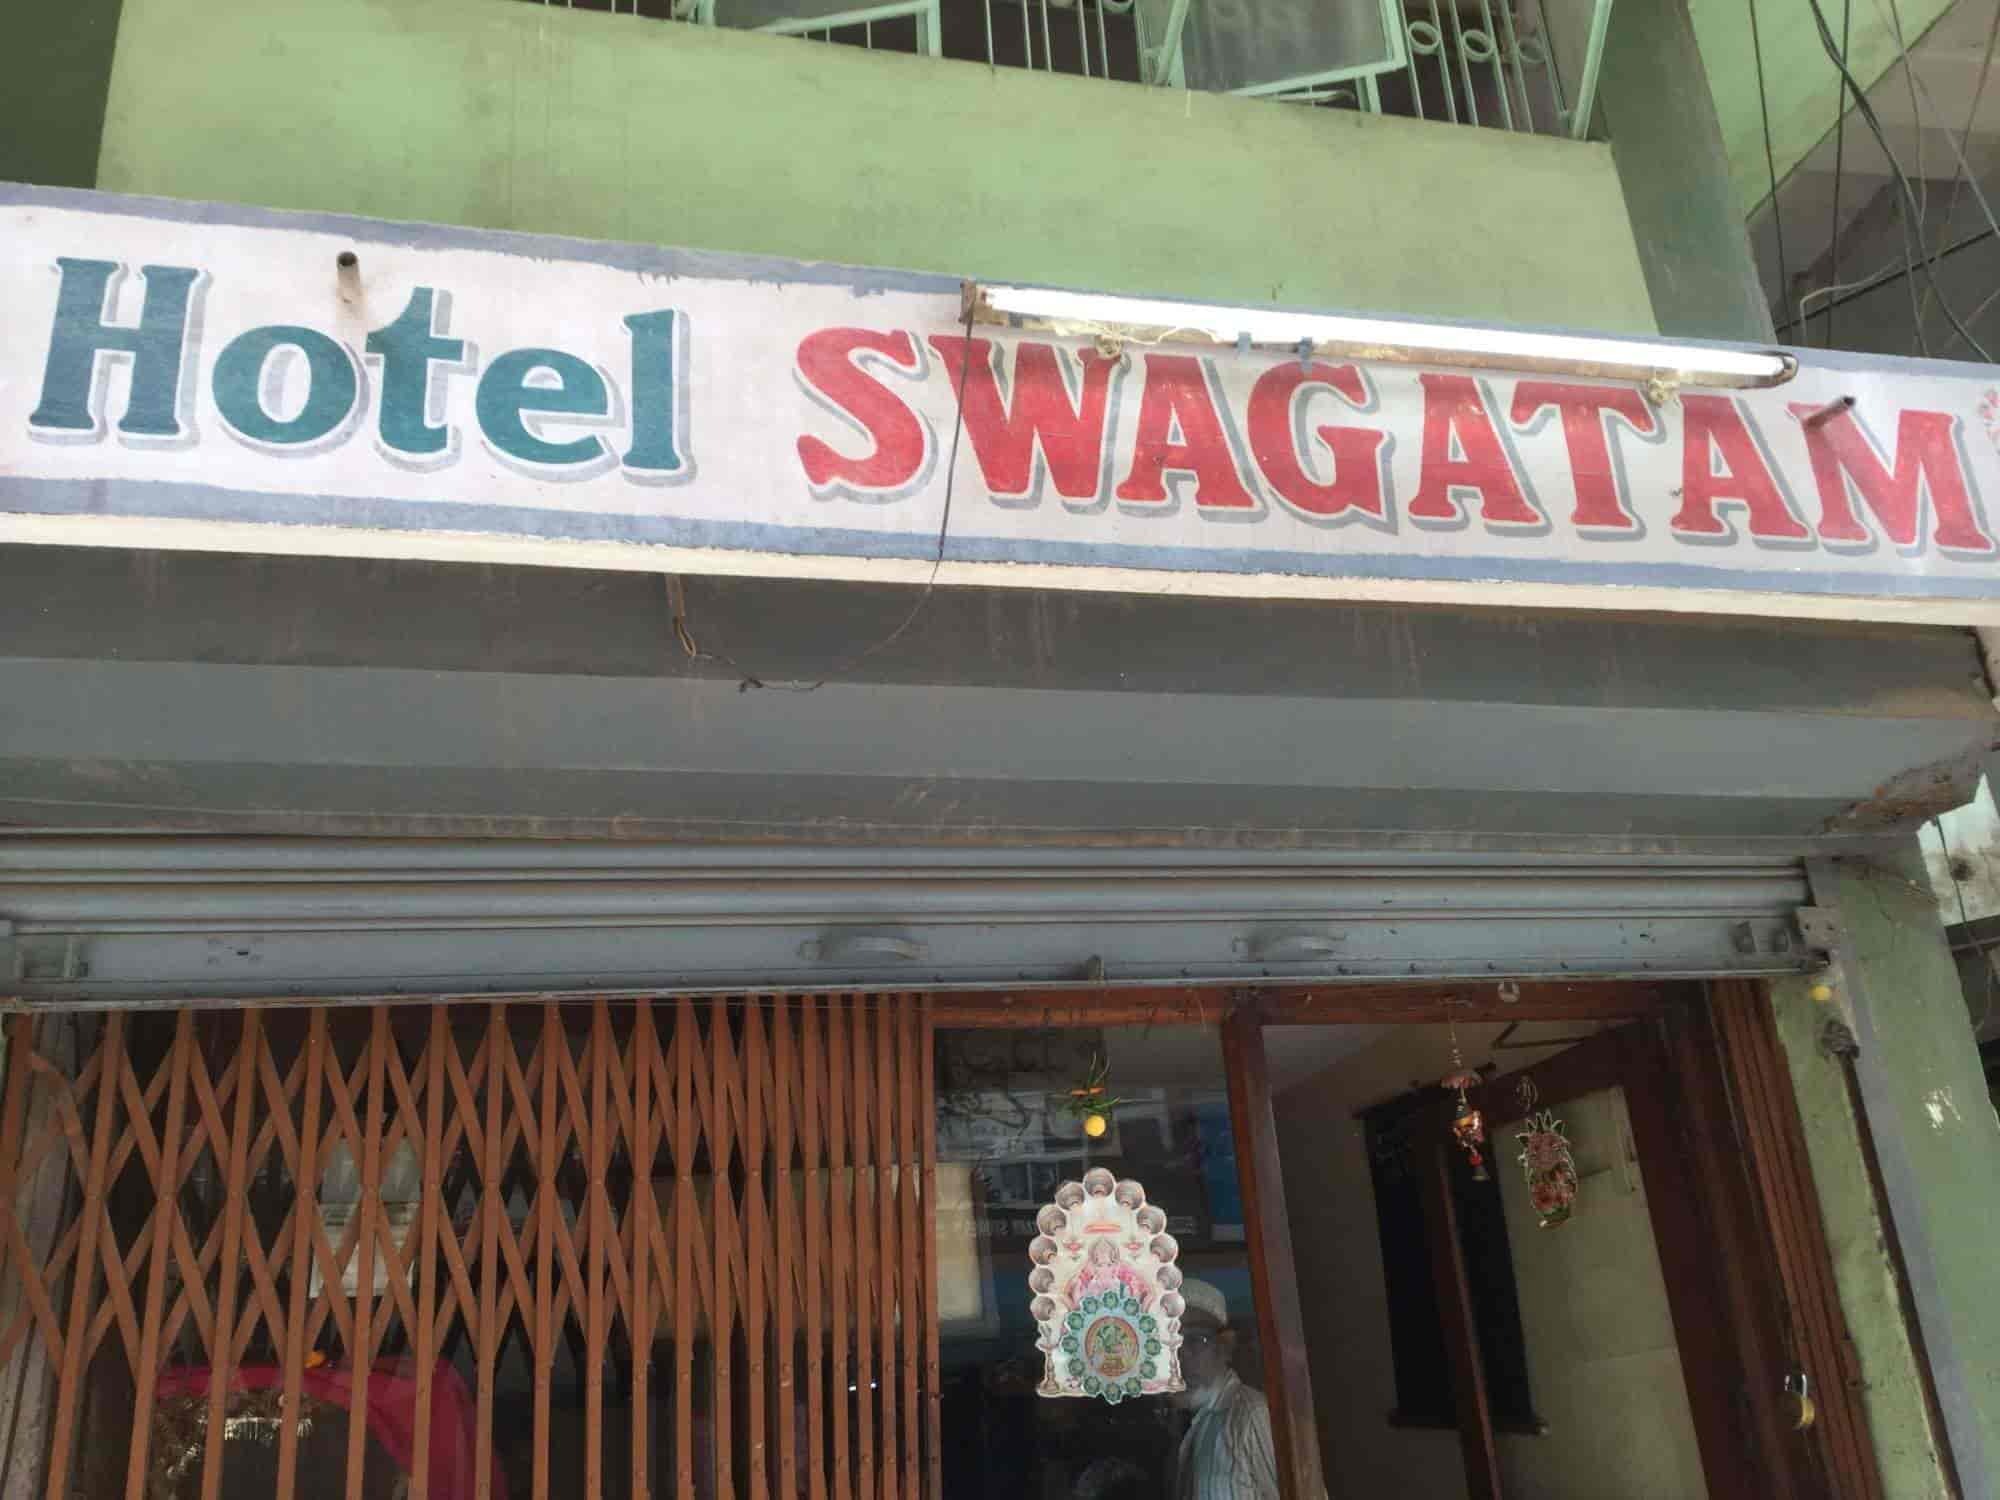 Hotel Swagatam, Exhibition Road - Hotels in Patna - Justdial